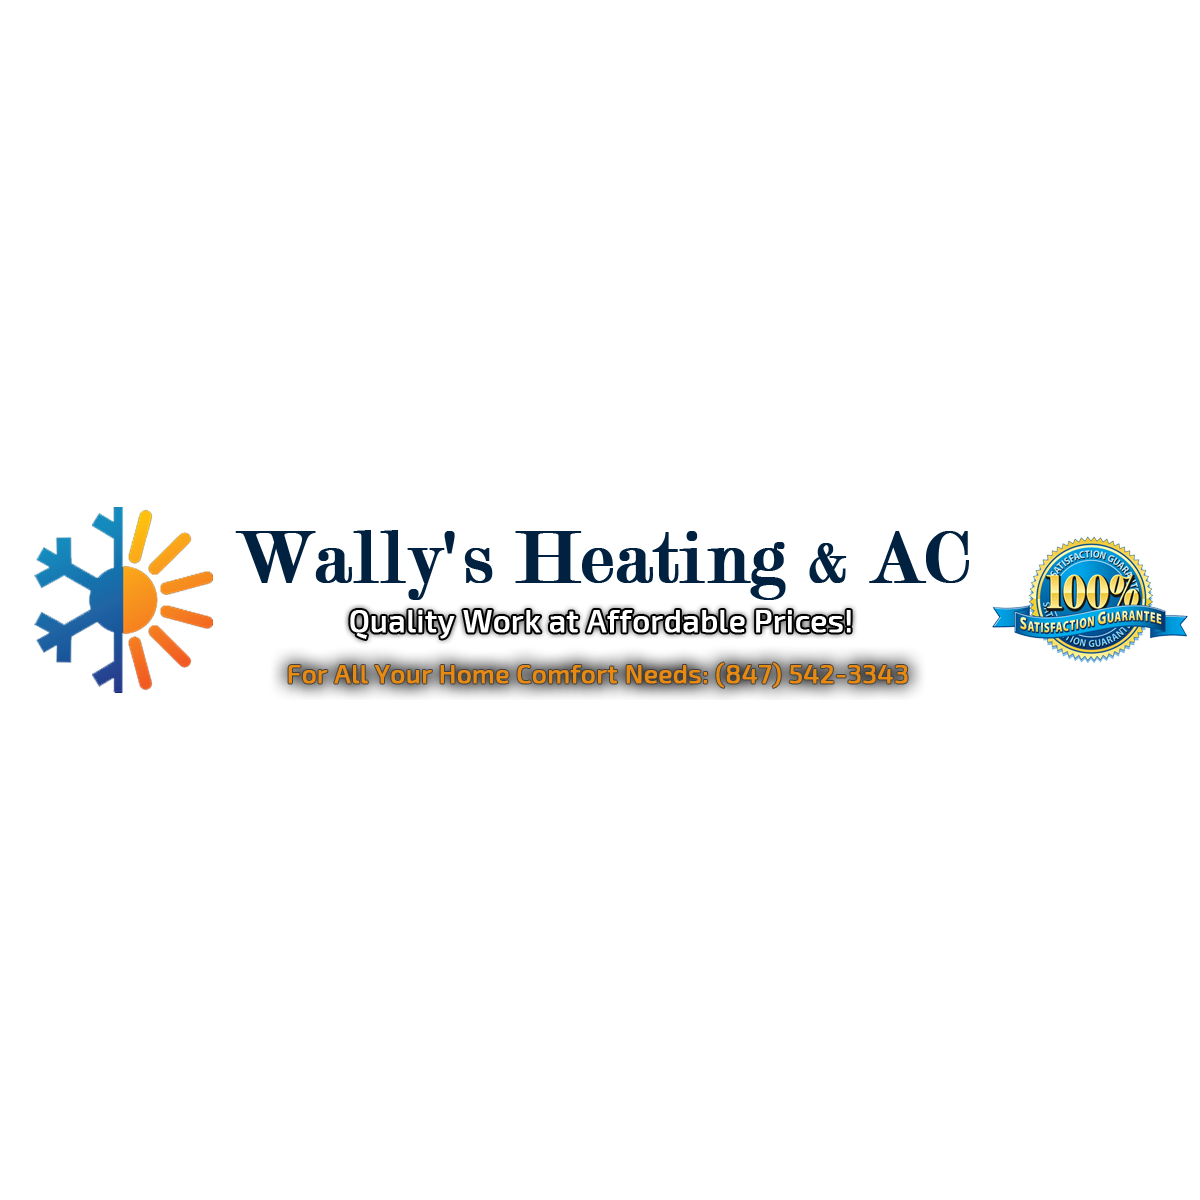 Wally's Heating and Air Conditioning